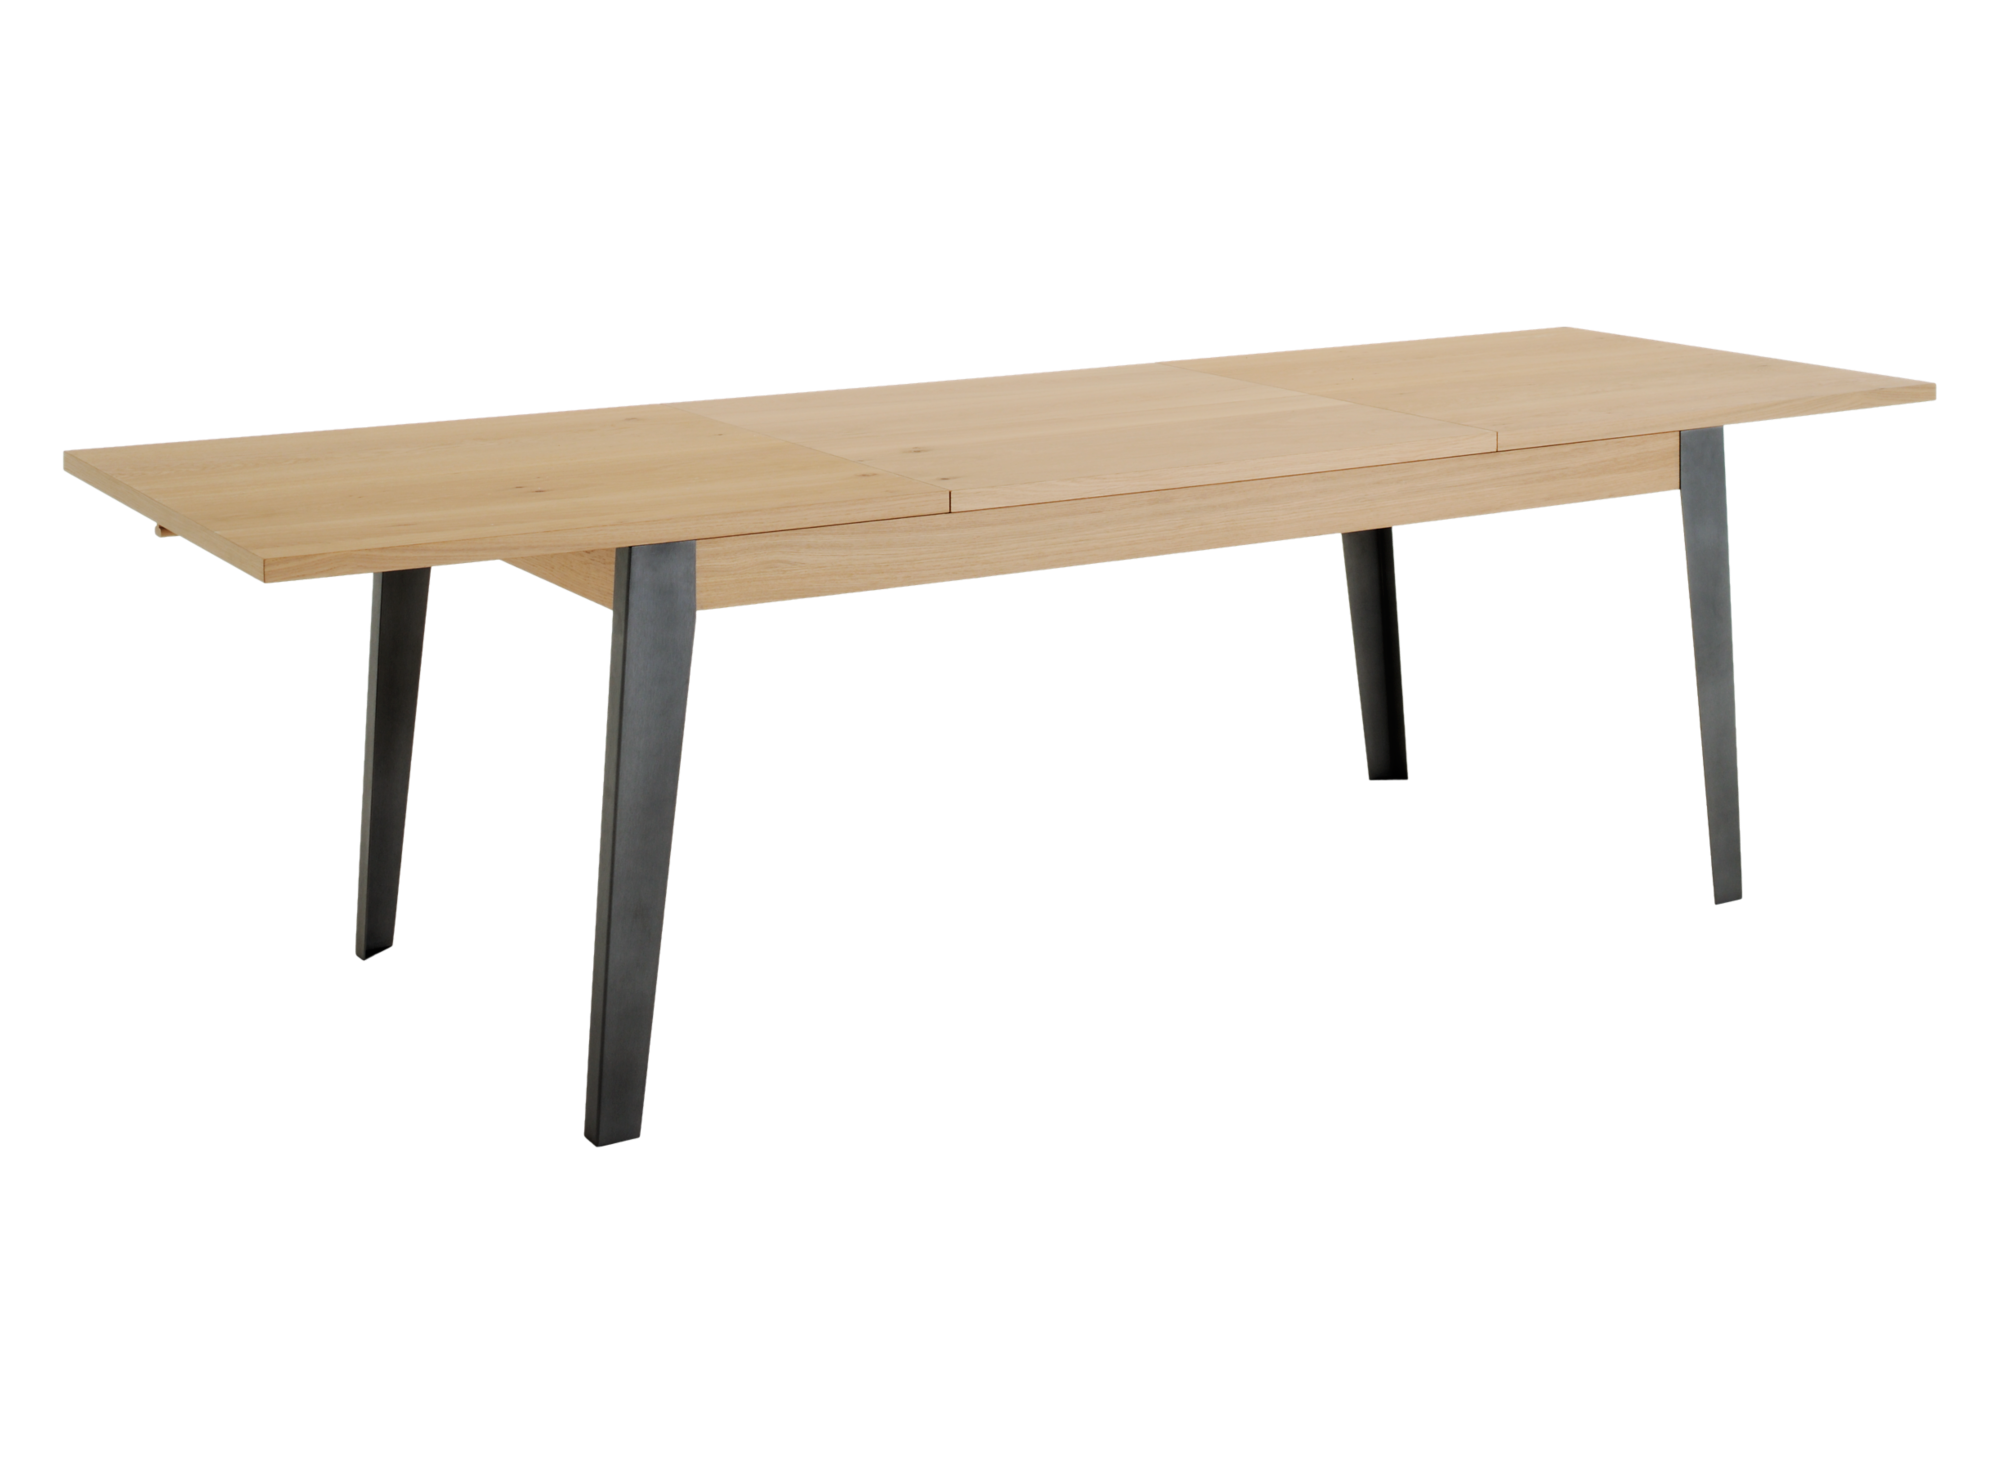 Table Rectangulaire Avec Allonge Table Table Chaise Meuble Fly Decor Home Decor Dining Bench